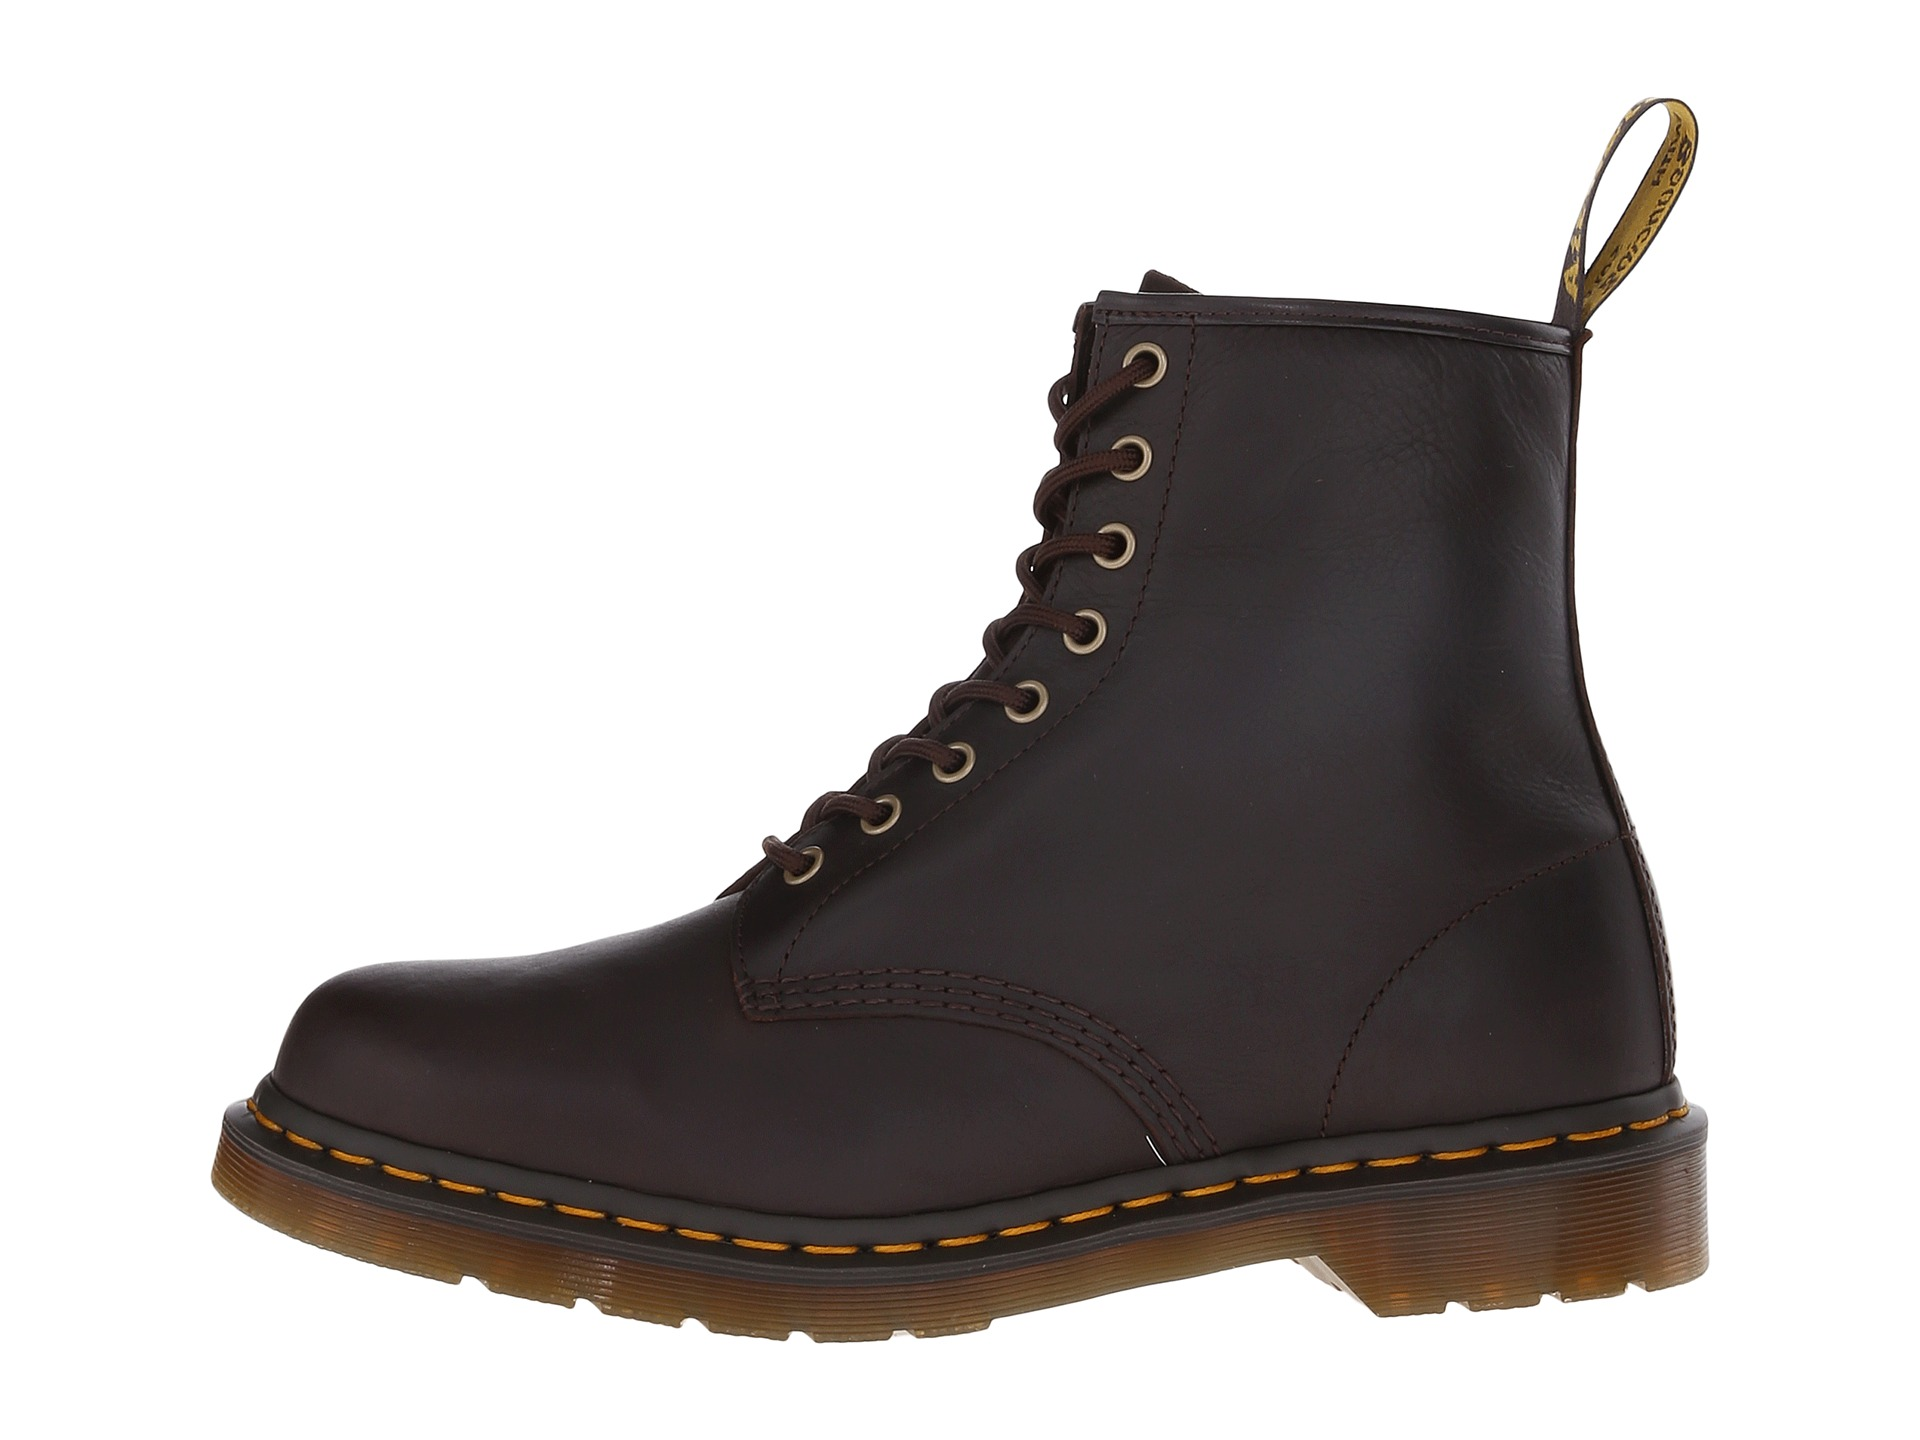 dr martens 1460 8 eye boot soft leather chocolate